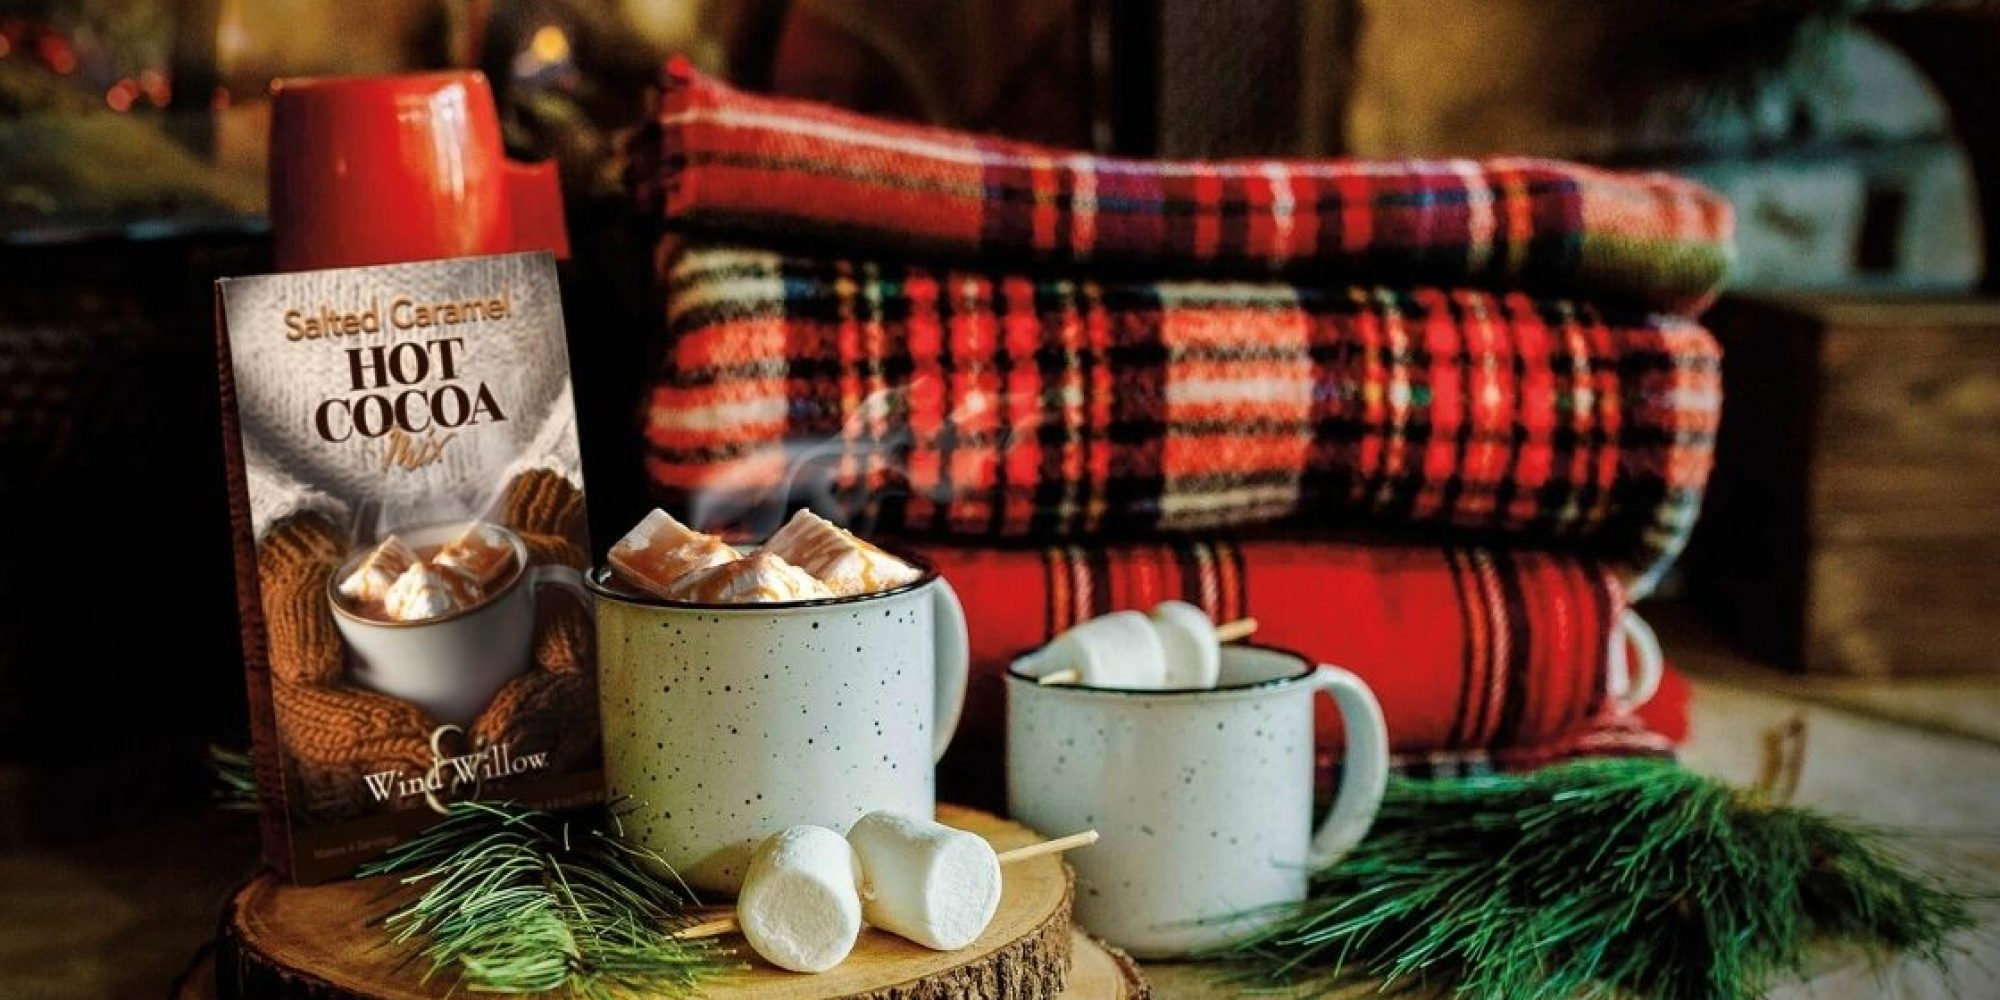 Cozy hot cocoa chocolate aesthetic fireplace plaid fall